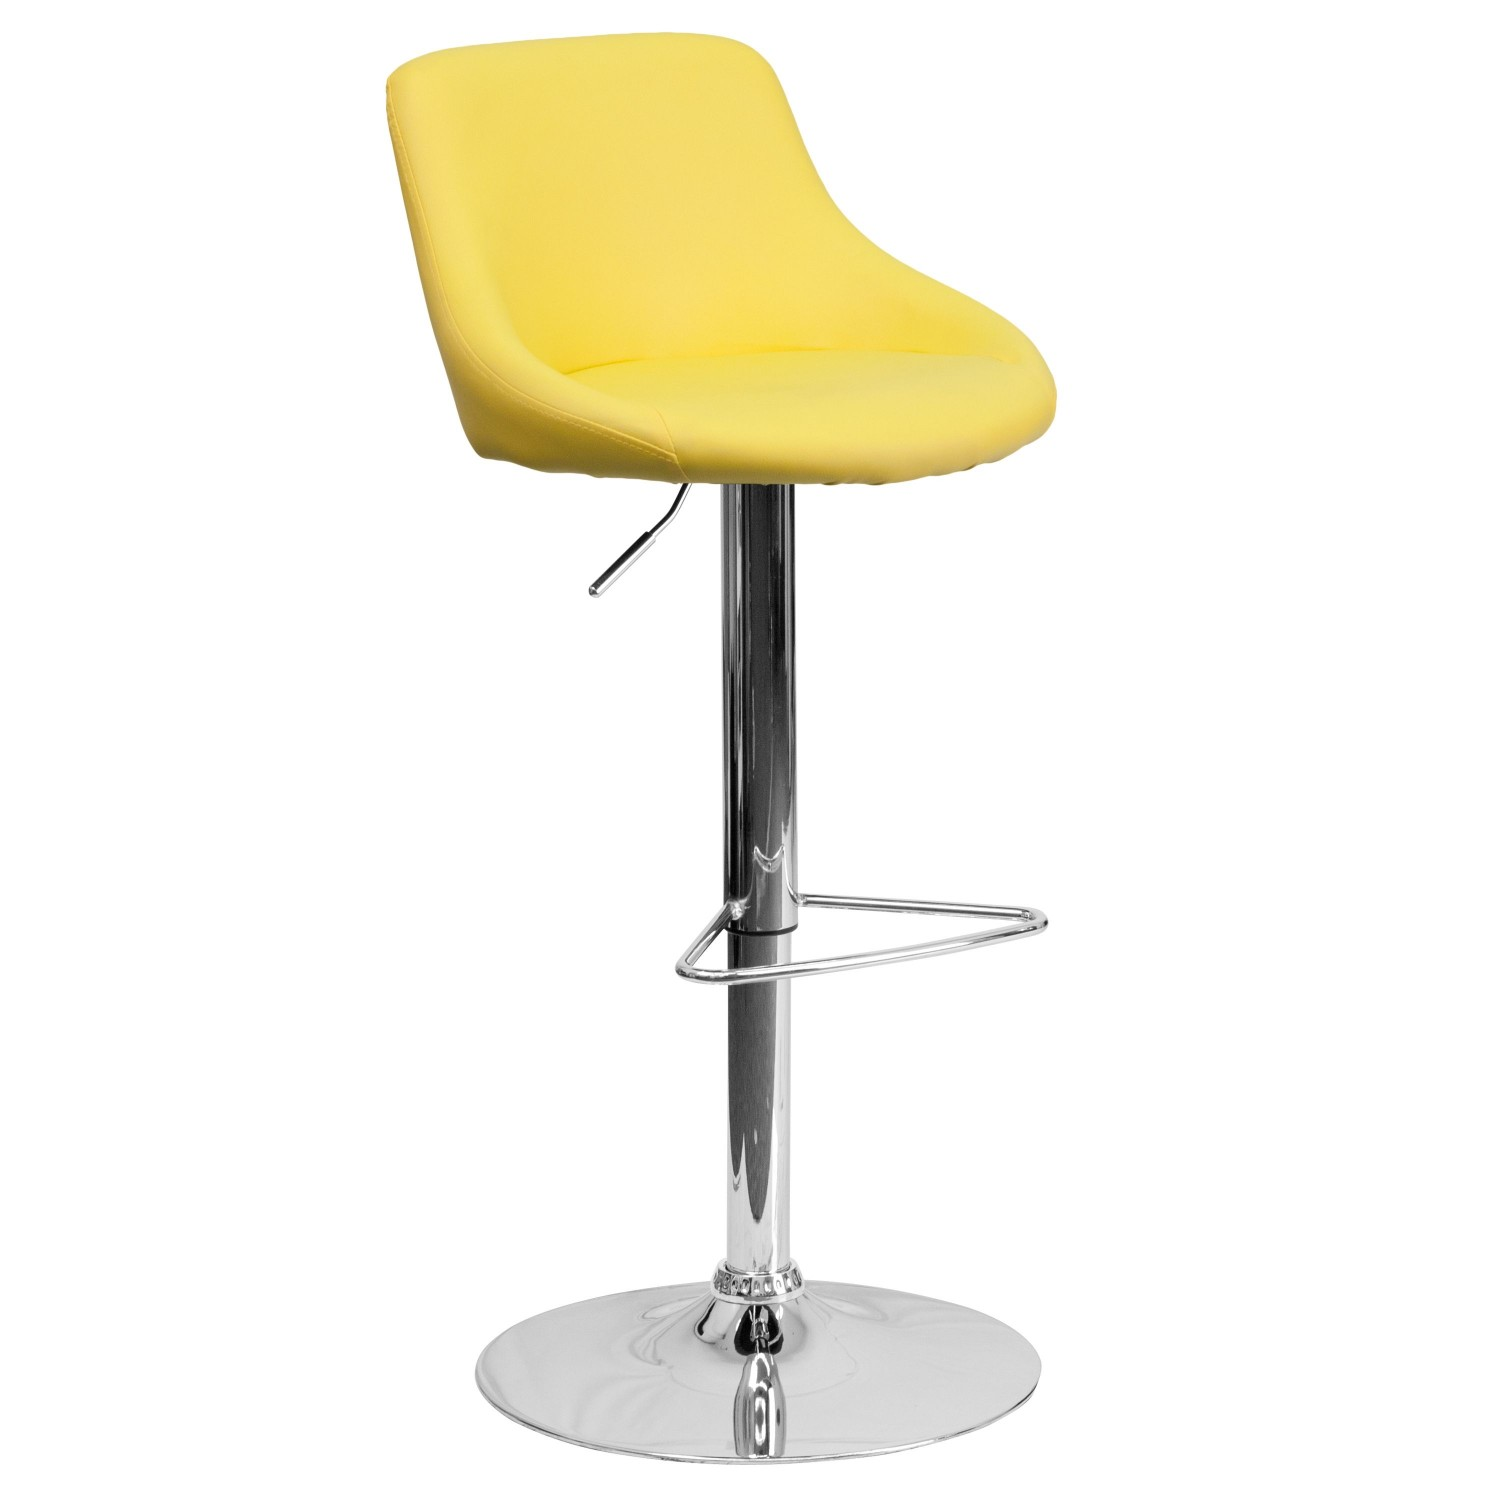 Flash Furniture CH-82028-MOD-YEL-GG Contemporary Yellow Vinyl Bucket Seat Adjustable Height Bar Stool